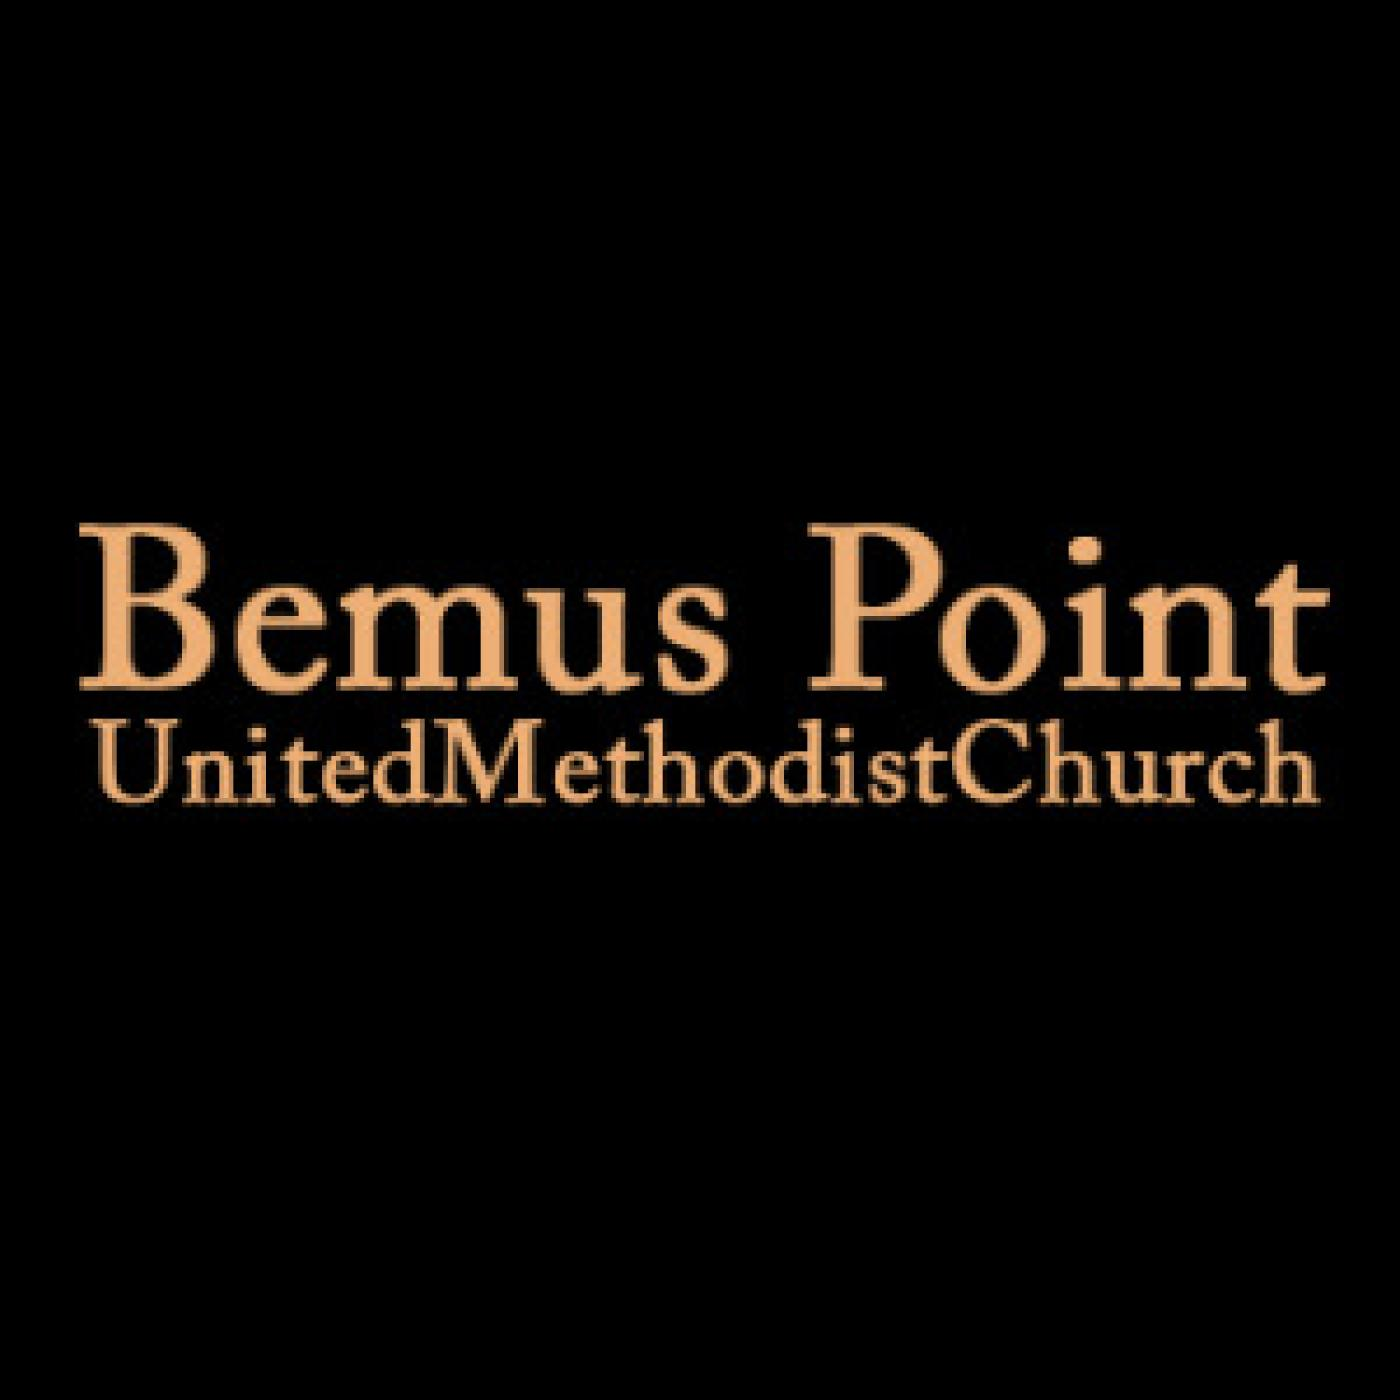 Bemus Point United Methodist Church